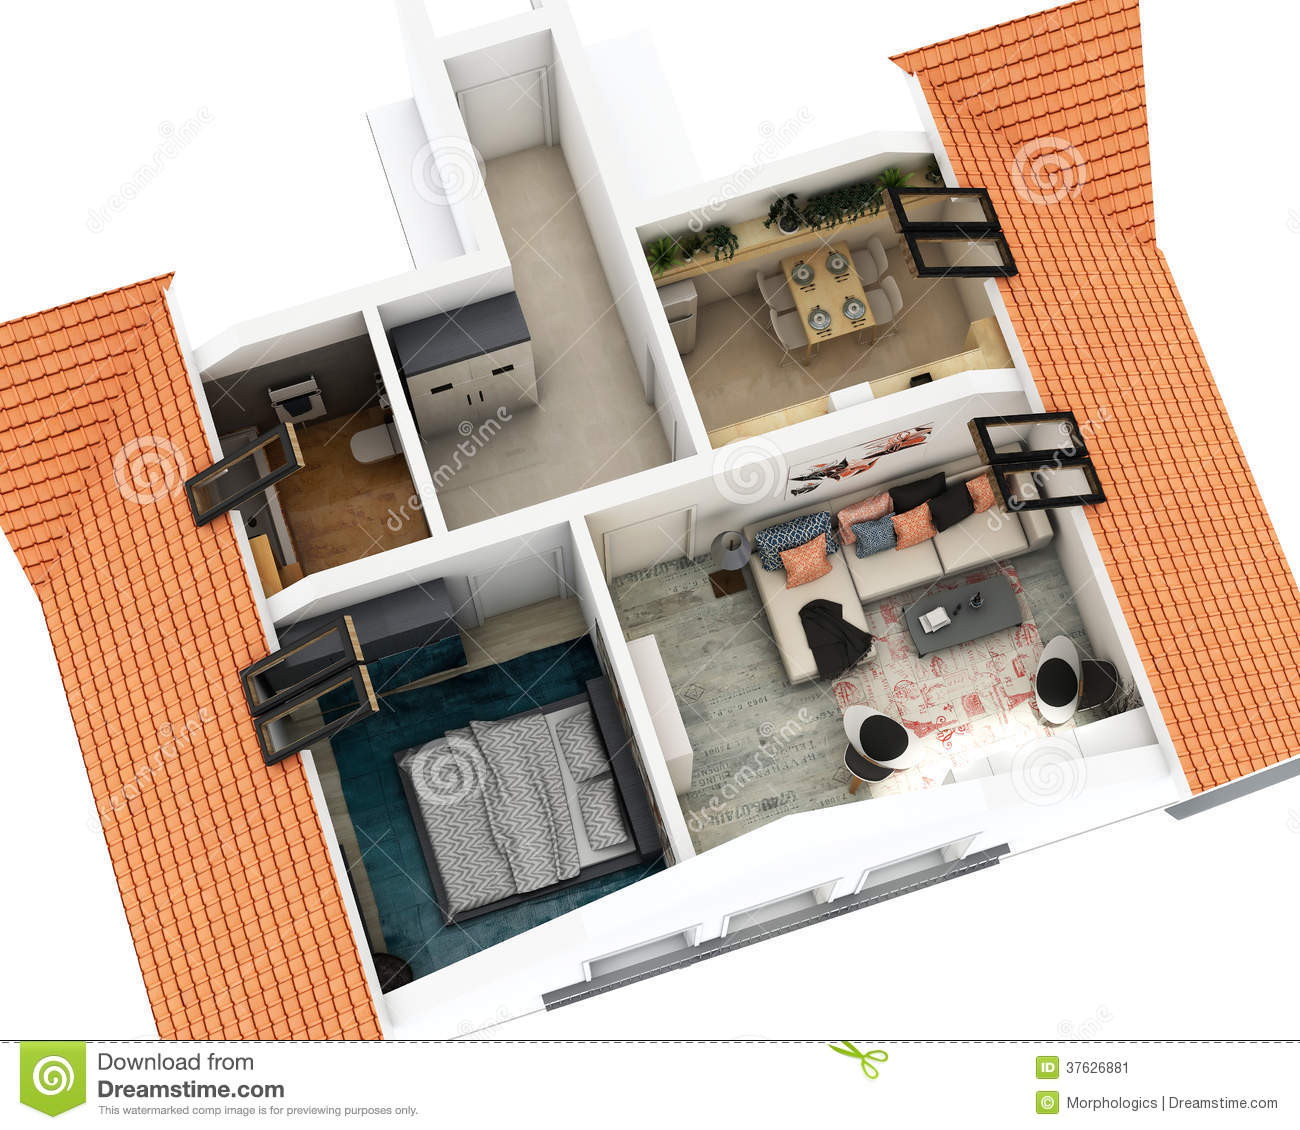 Appartement cartoons illustrations vector stock images for 3d appartement